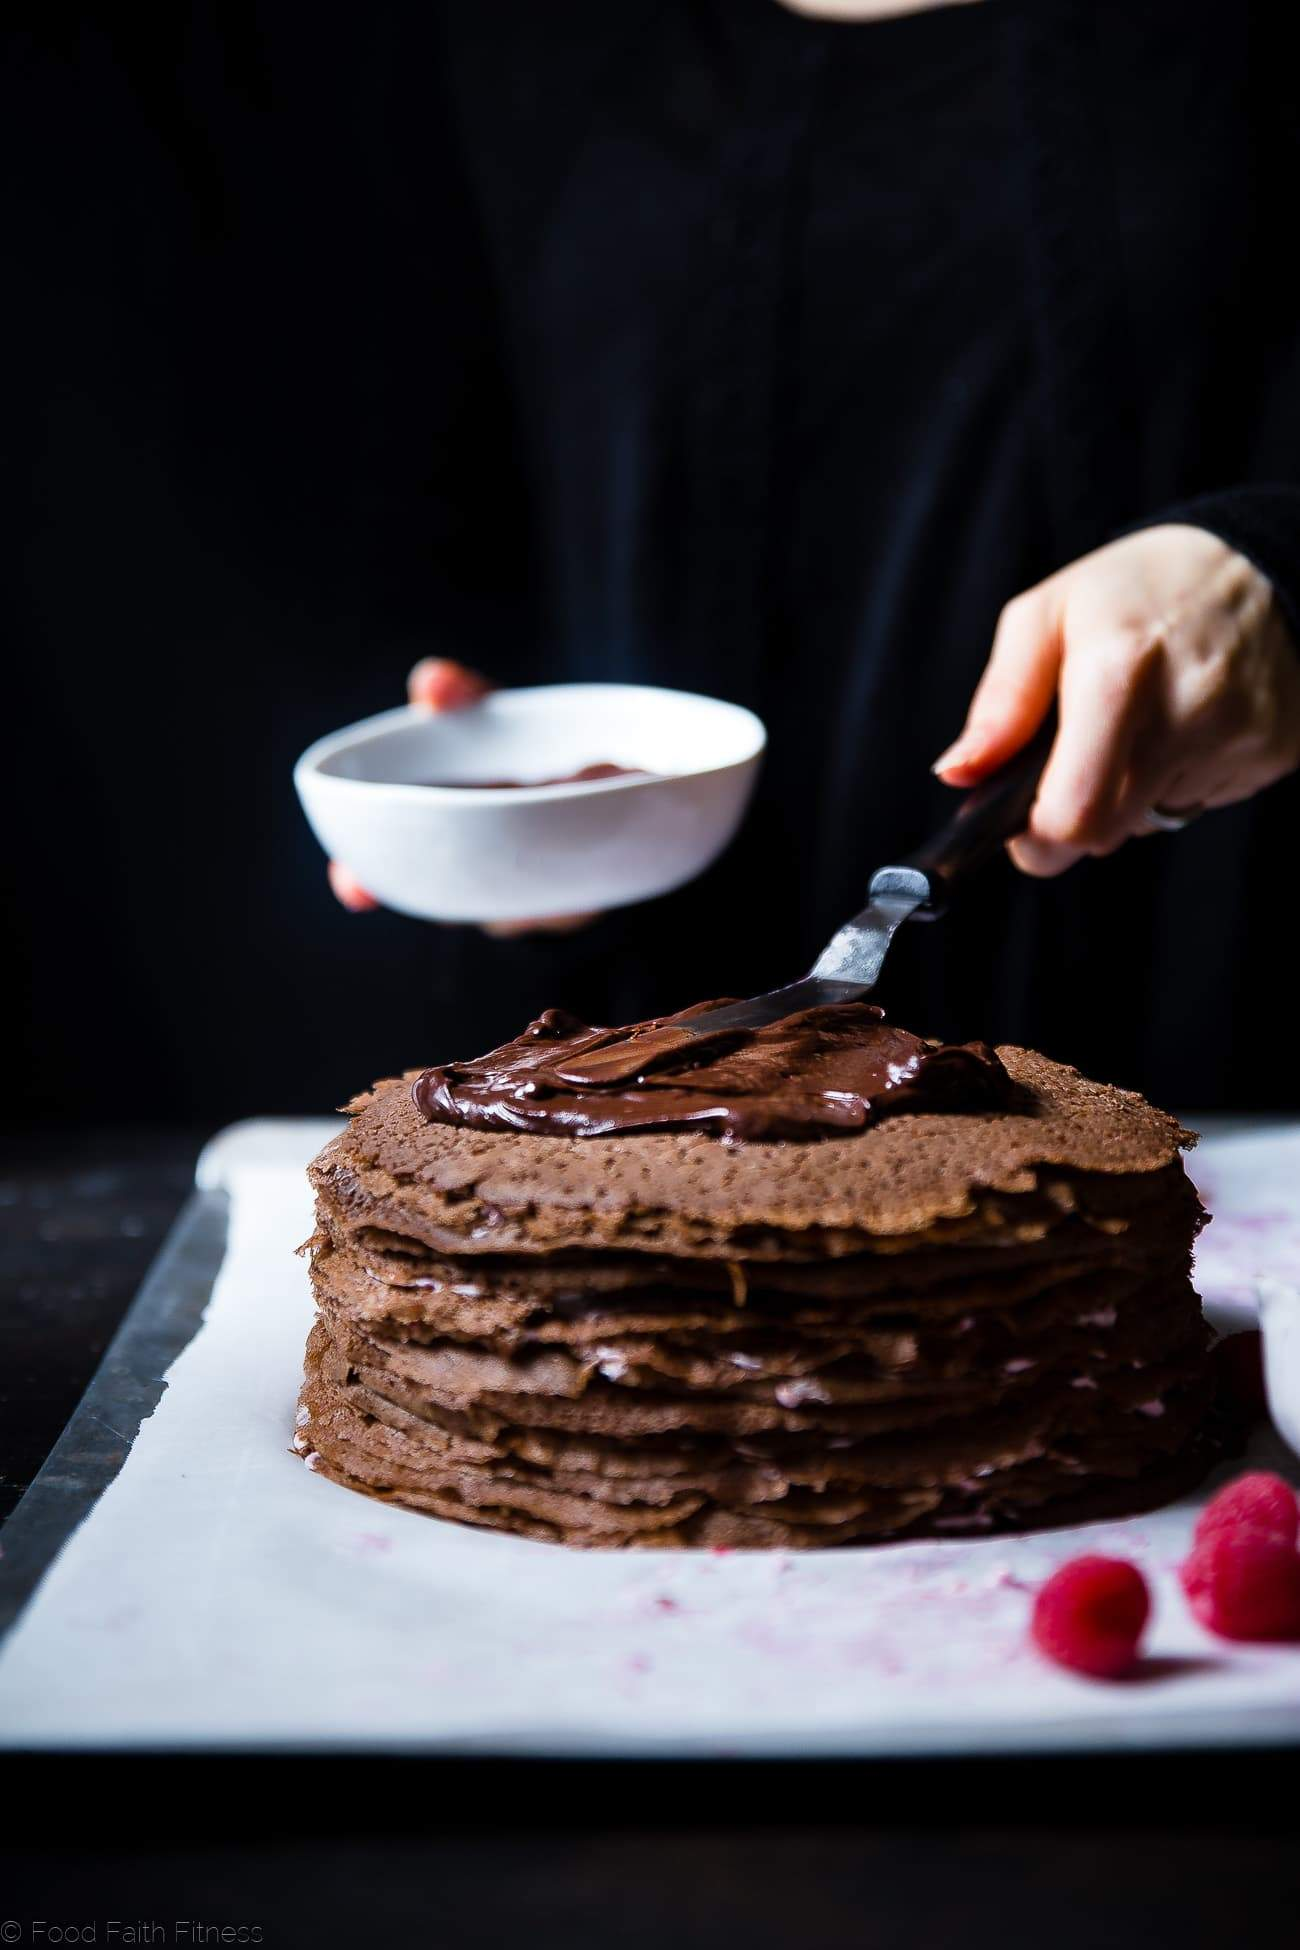 Raspberry Chocolate Vegan Crepe Cake - These crepe cake is made of chocolate crepes layered with raspberries and creamy coconut! It's an impressive healthier, gluten and dairy free dessert that everyone will love! | Foodfaithfitness.com | @FoodFaithFit